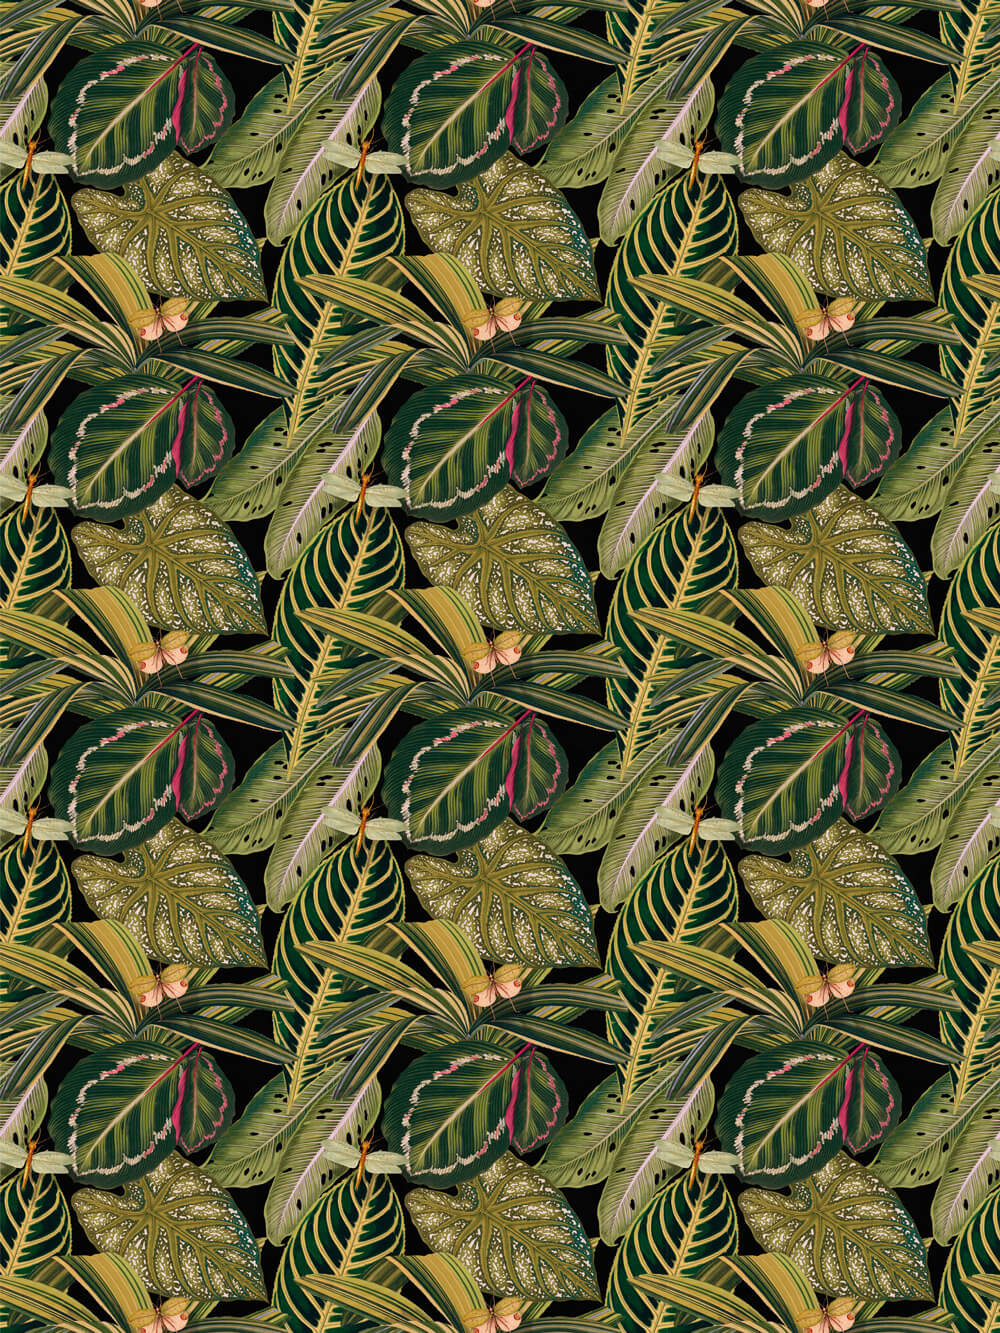 Amazonia by Mind the Gap Green Fabric Wallpaper